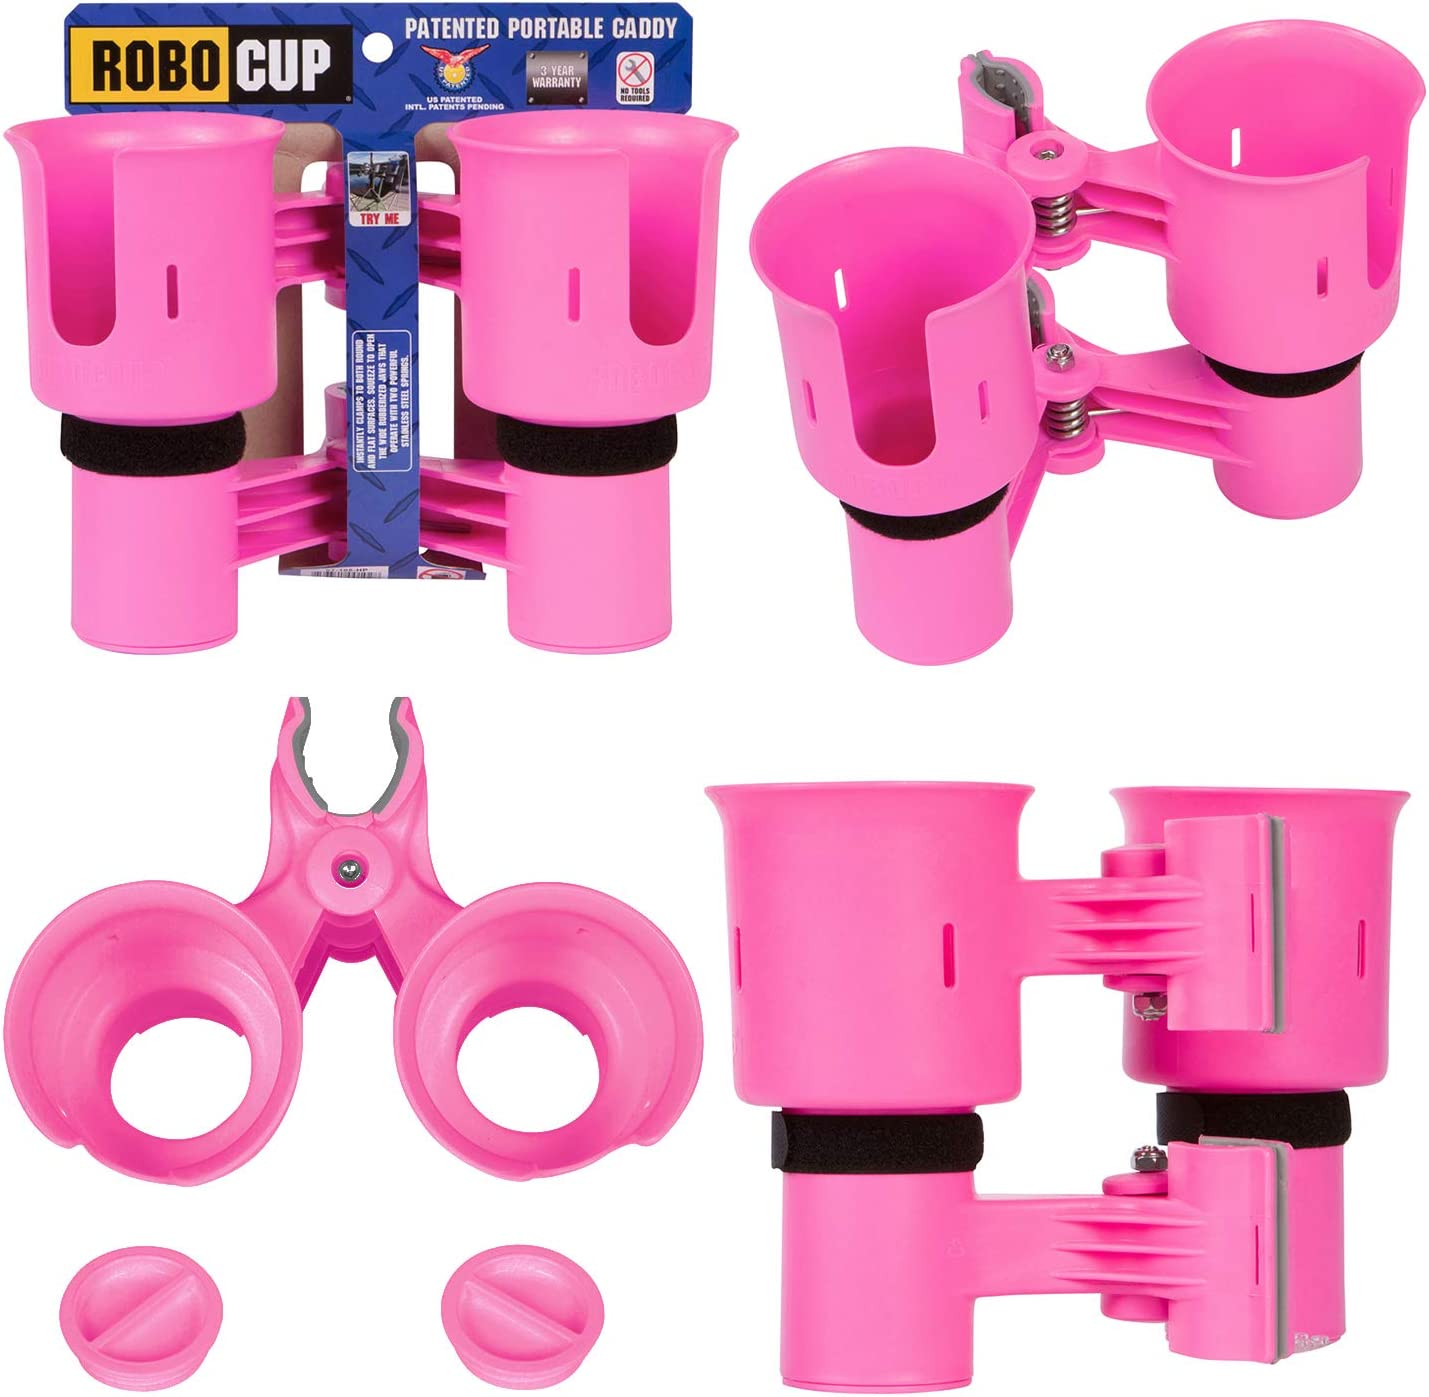 ROBOCUP 12 Colors, Best Cup Holder for Drinks, Fishing Rod/Pole, Boat, Beach Chair/Golf Cart/Wheelchair/Walker/Drum Sticks/Microphone Stand…